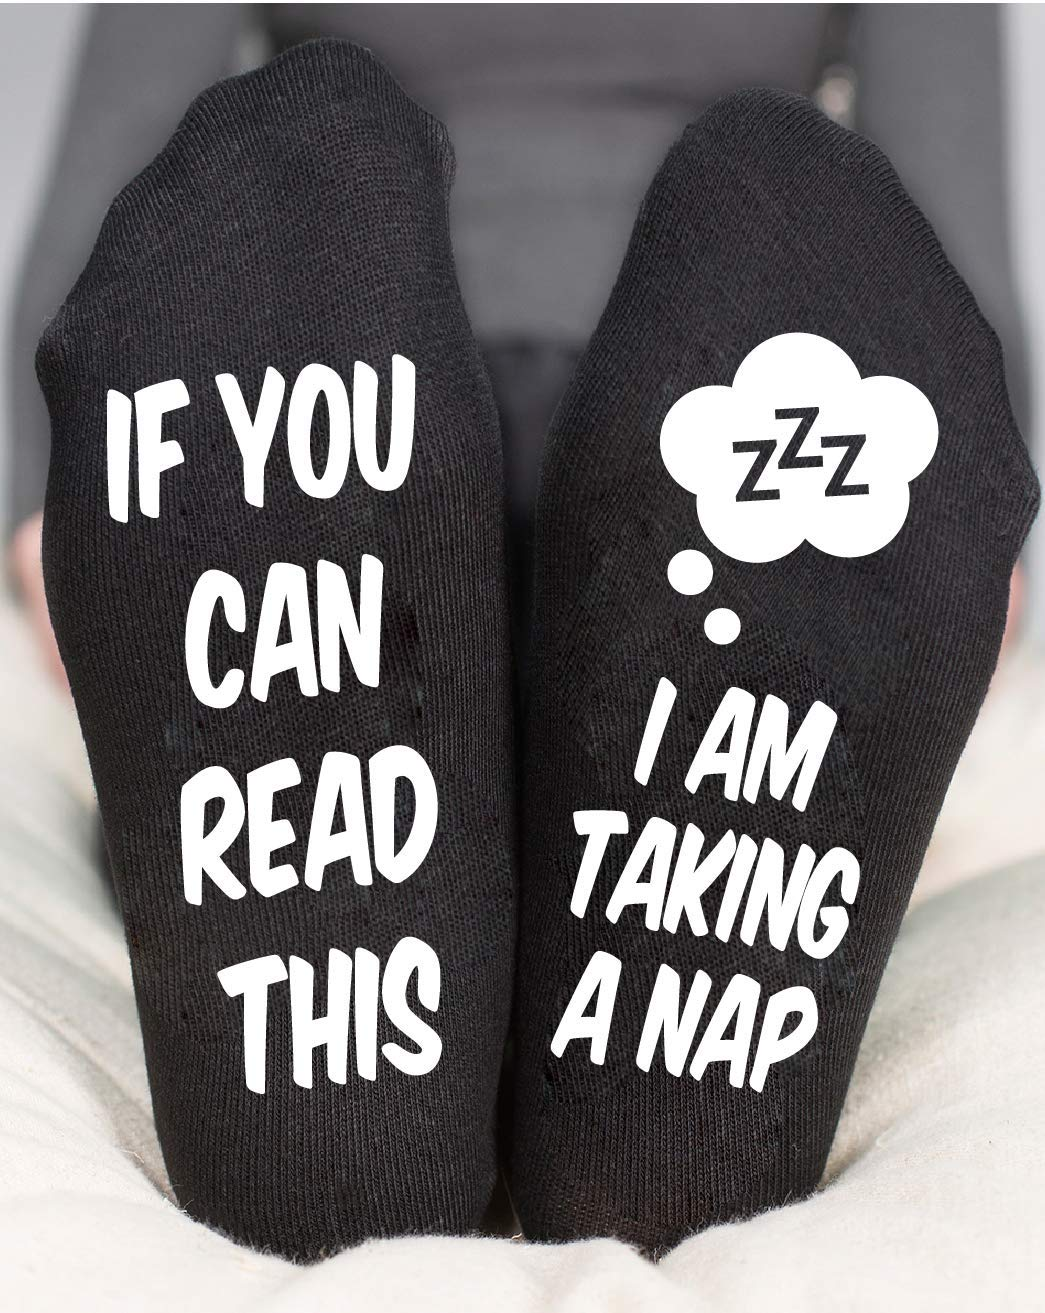 If You Can Read This I Am Taking A Nap Socks Funny Gift